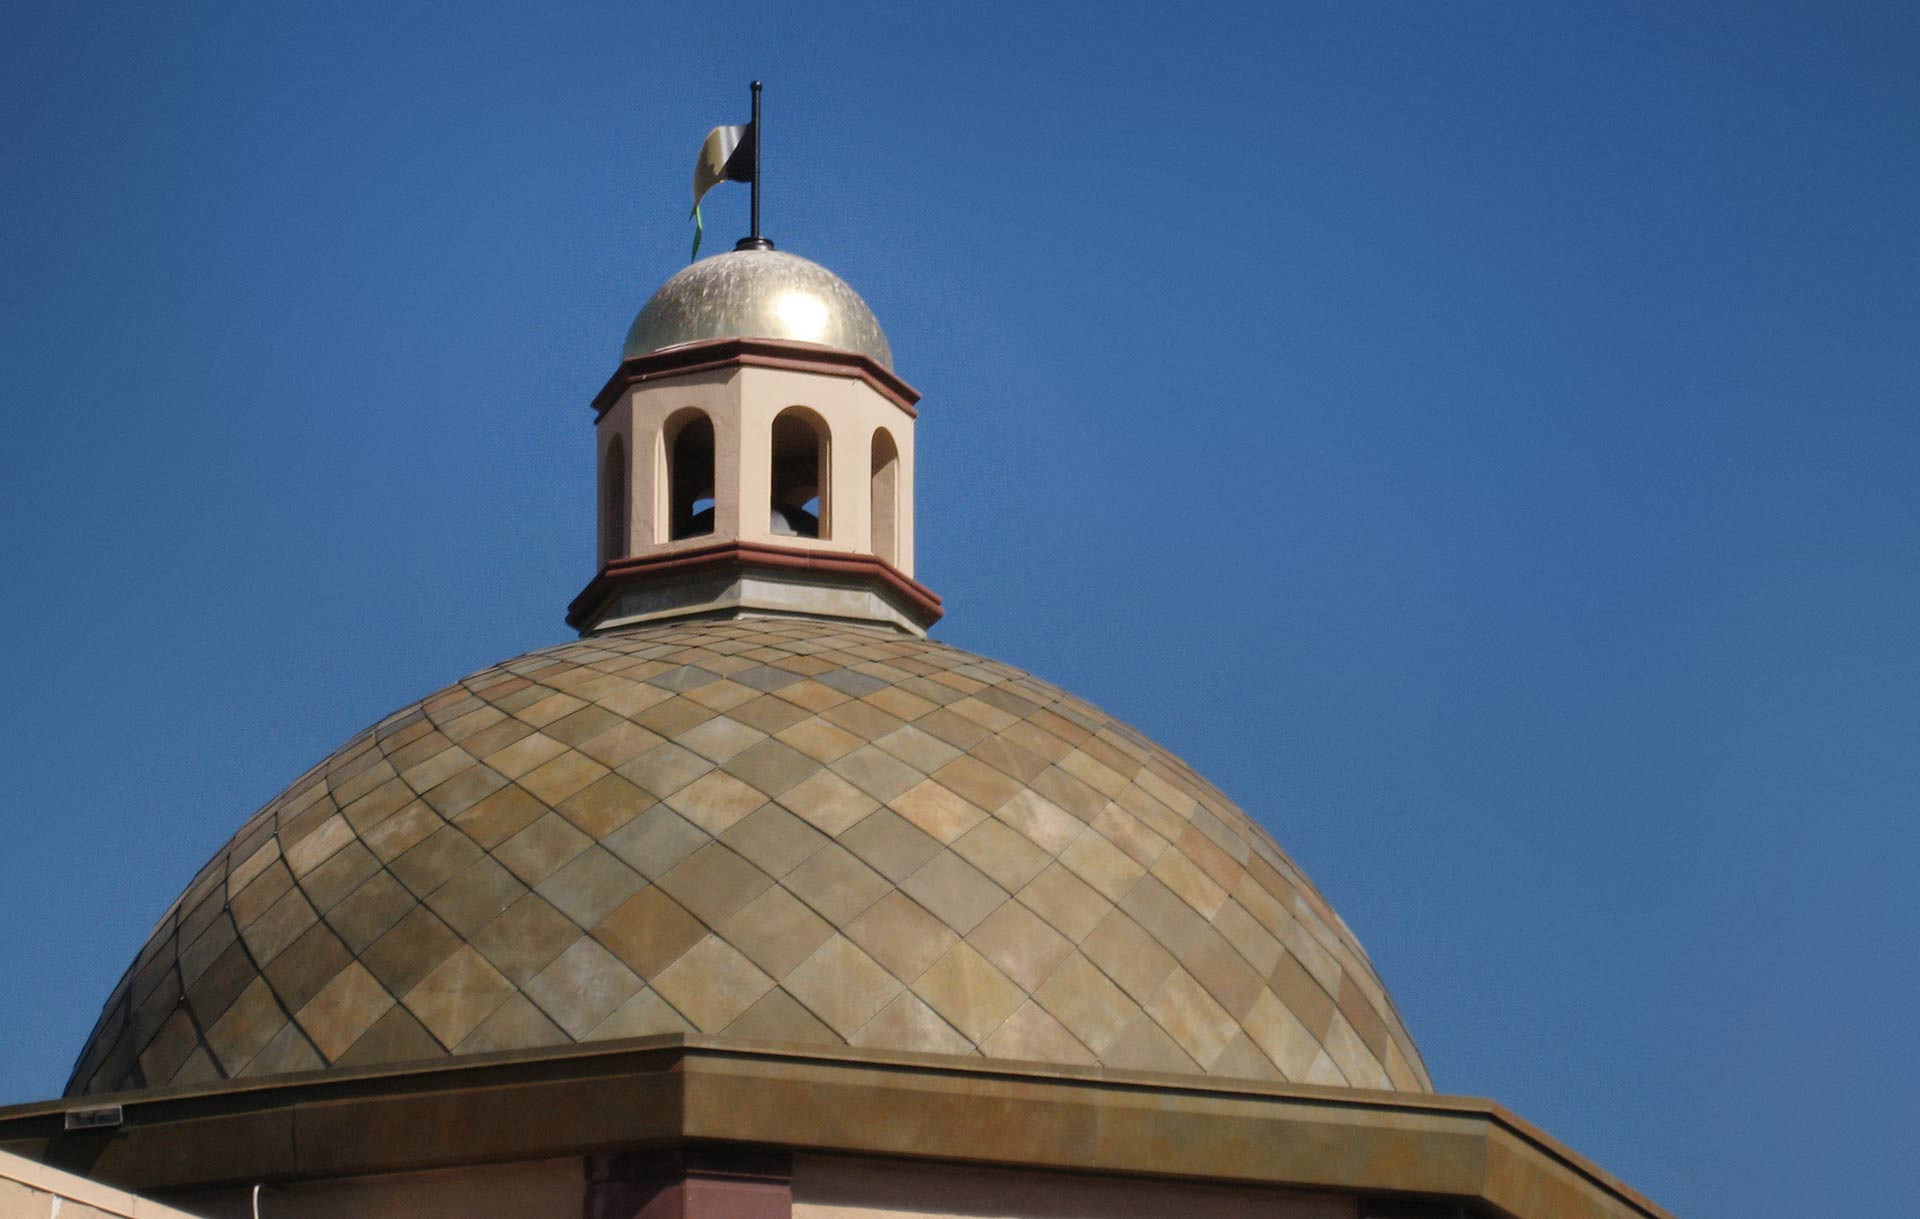 Roano Zinc patina featured as part of the Dome on the Plaza.